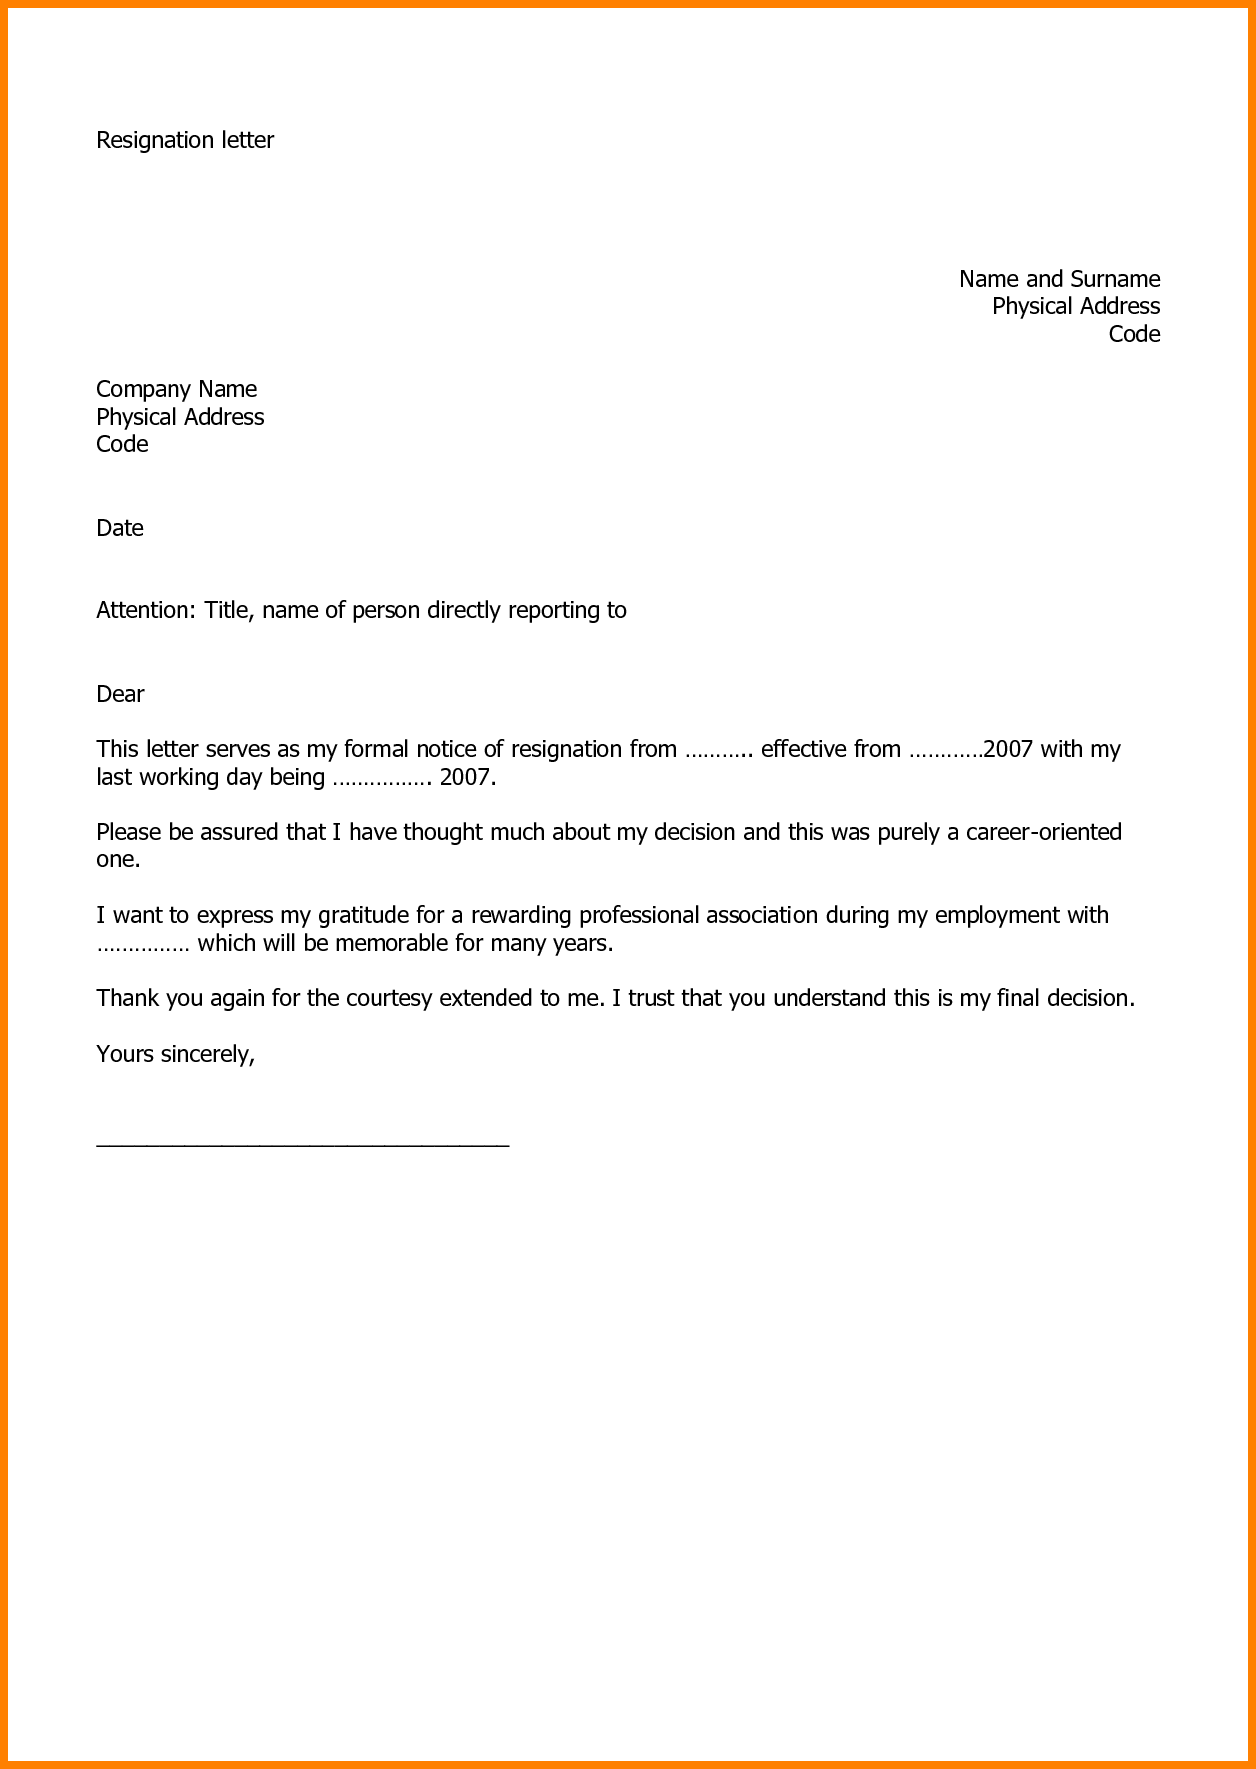 Letter format for resignation choice image letter format formal letter format for job resignation resignation letter exampleg spiritdancerdesigns Choice Image